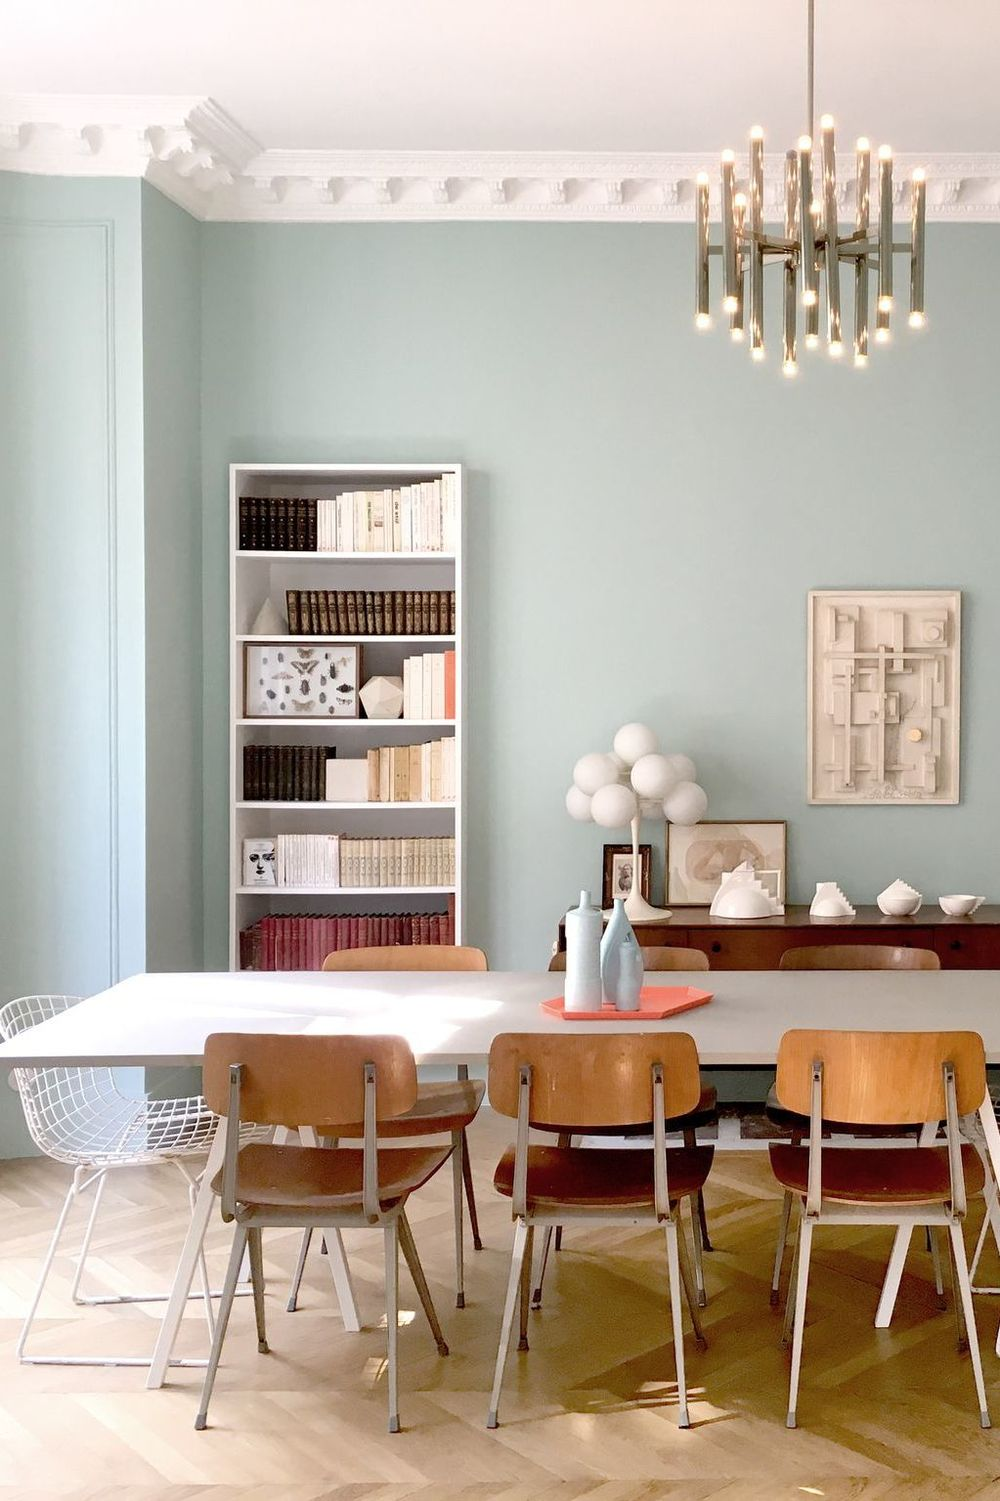 Parisian dining room with mint walls and thrifted dining chairs via CoteMaison DPLG Suzanne Tanascaux